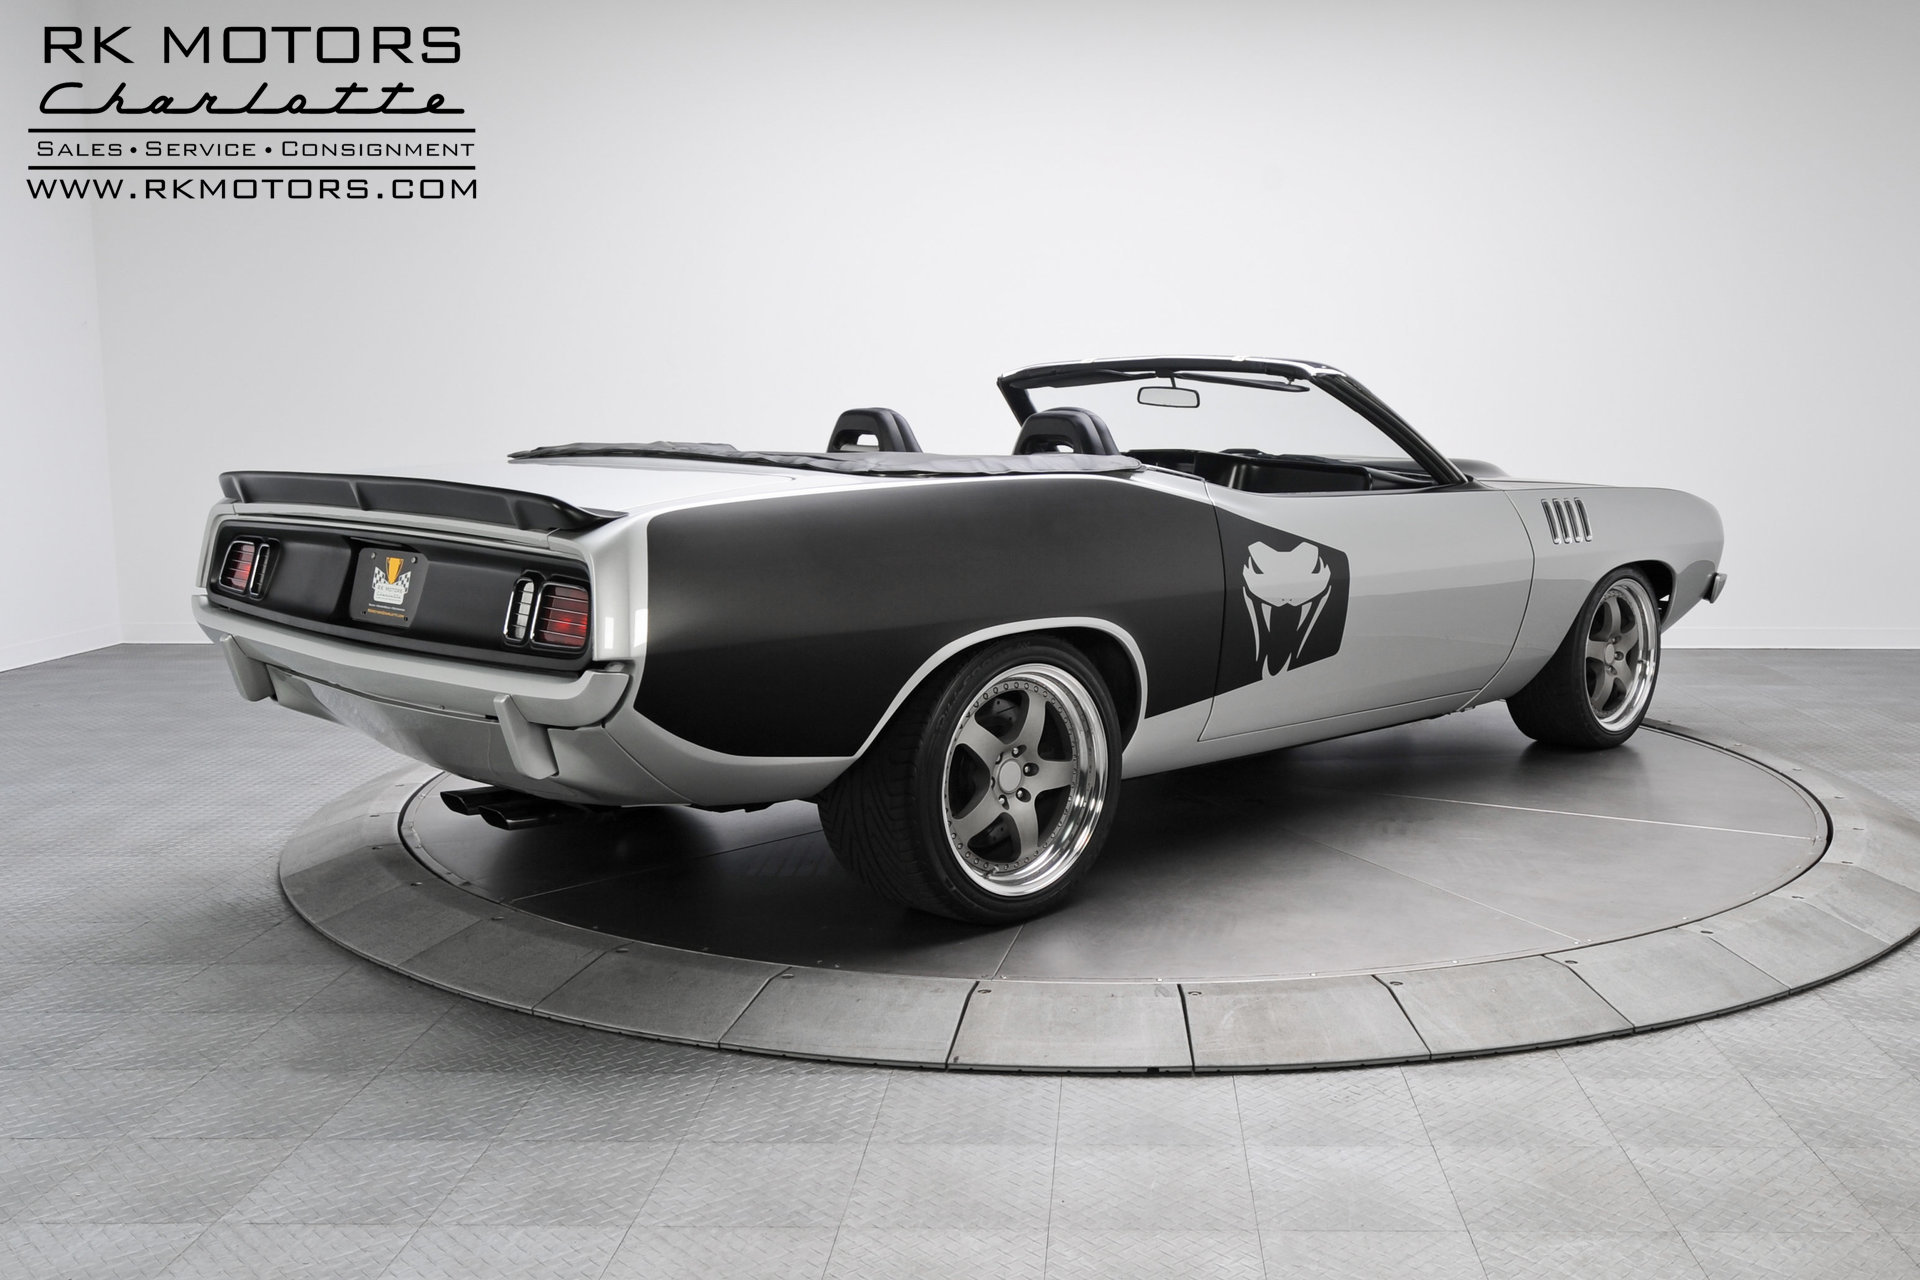 133326 1971 Plymouth 'Cuda | RK Motors Classic and Performance Cars for Sale